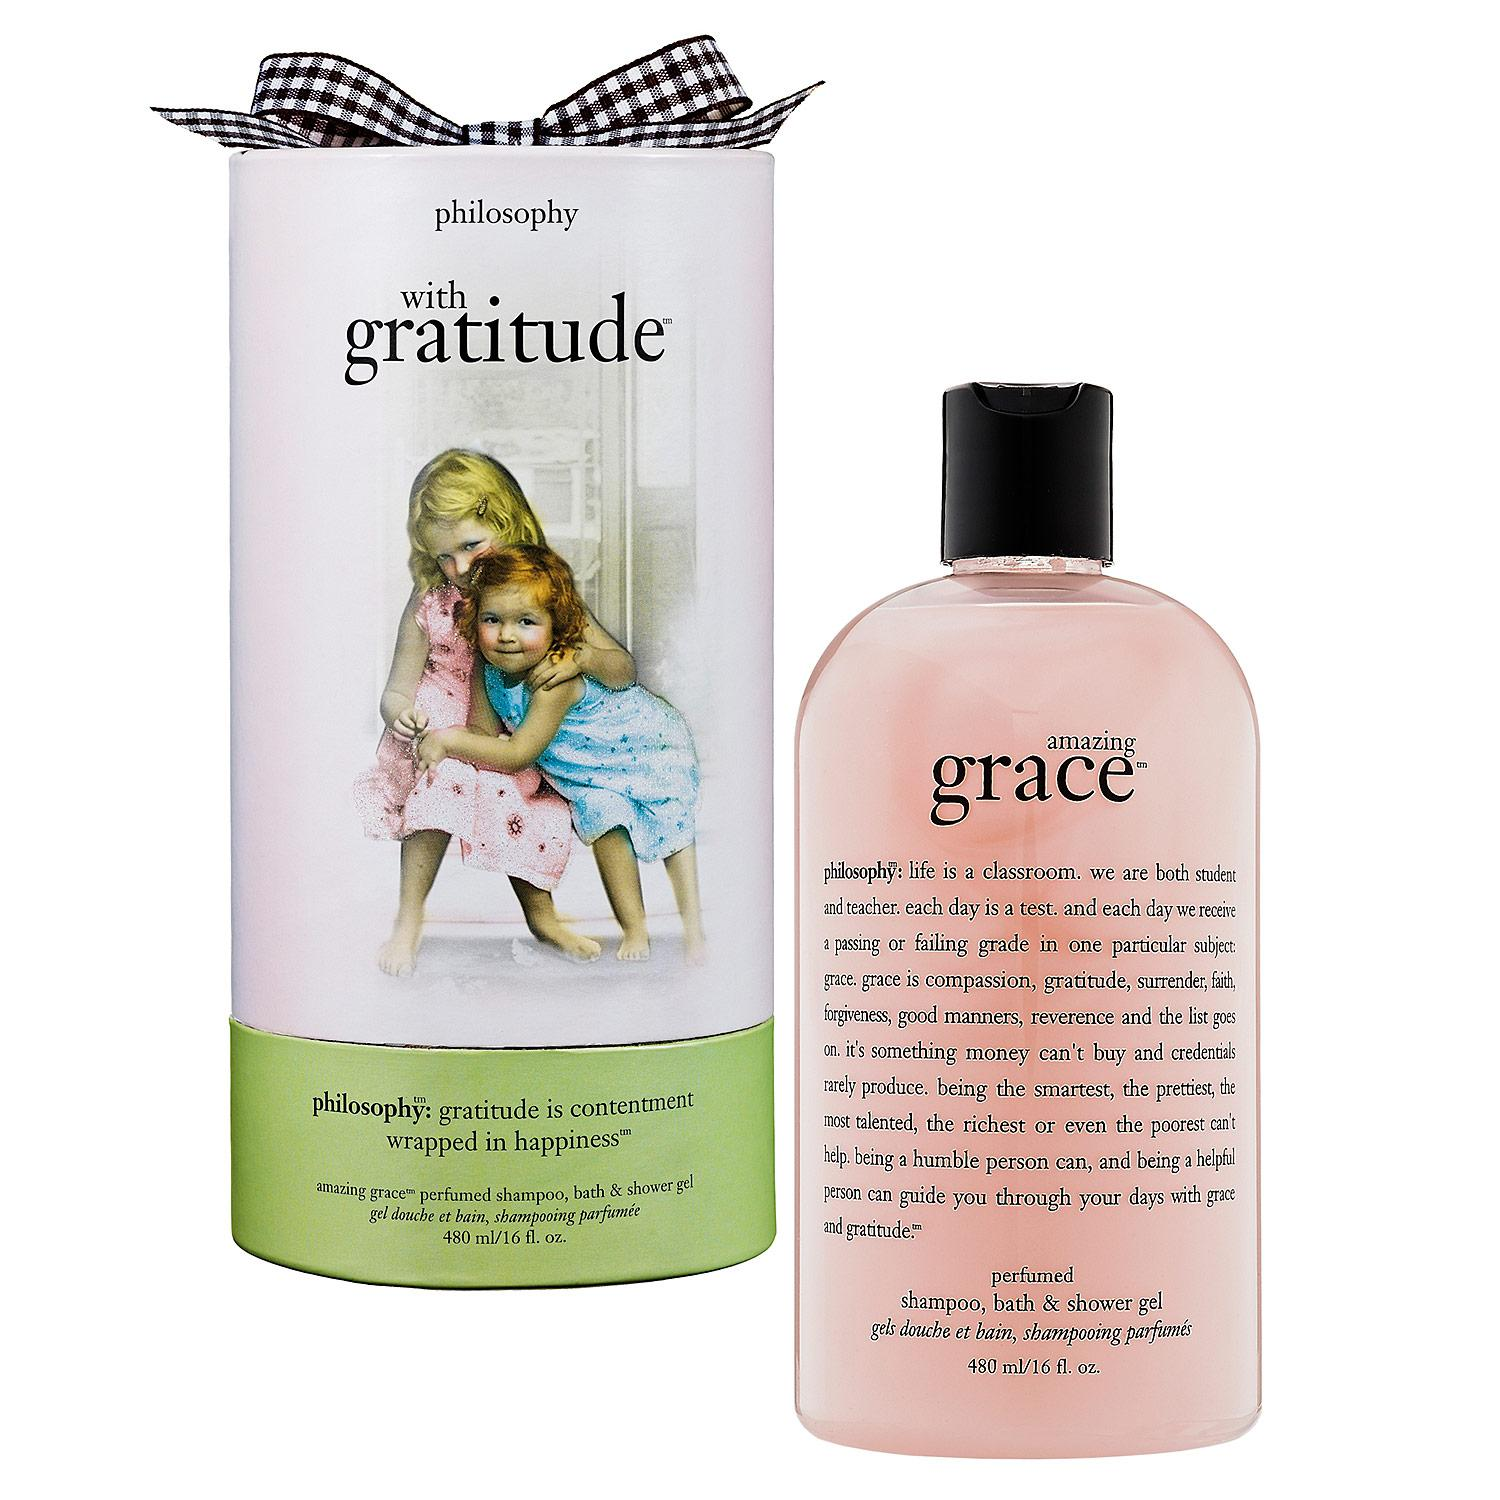 philosophy with gratitude shampoo bath and shower gel bath amp shower gels scented bubble baths shampoos and